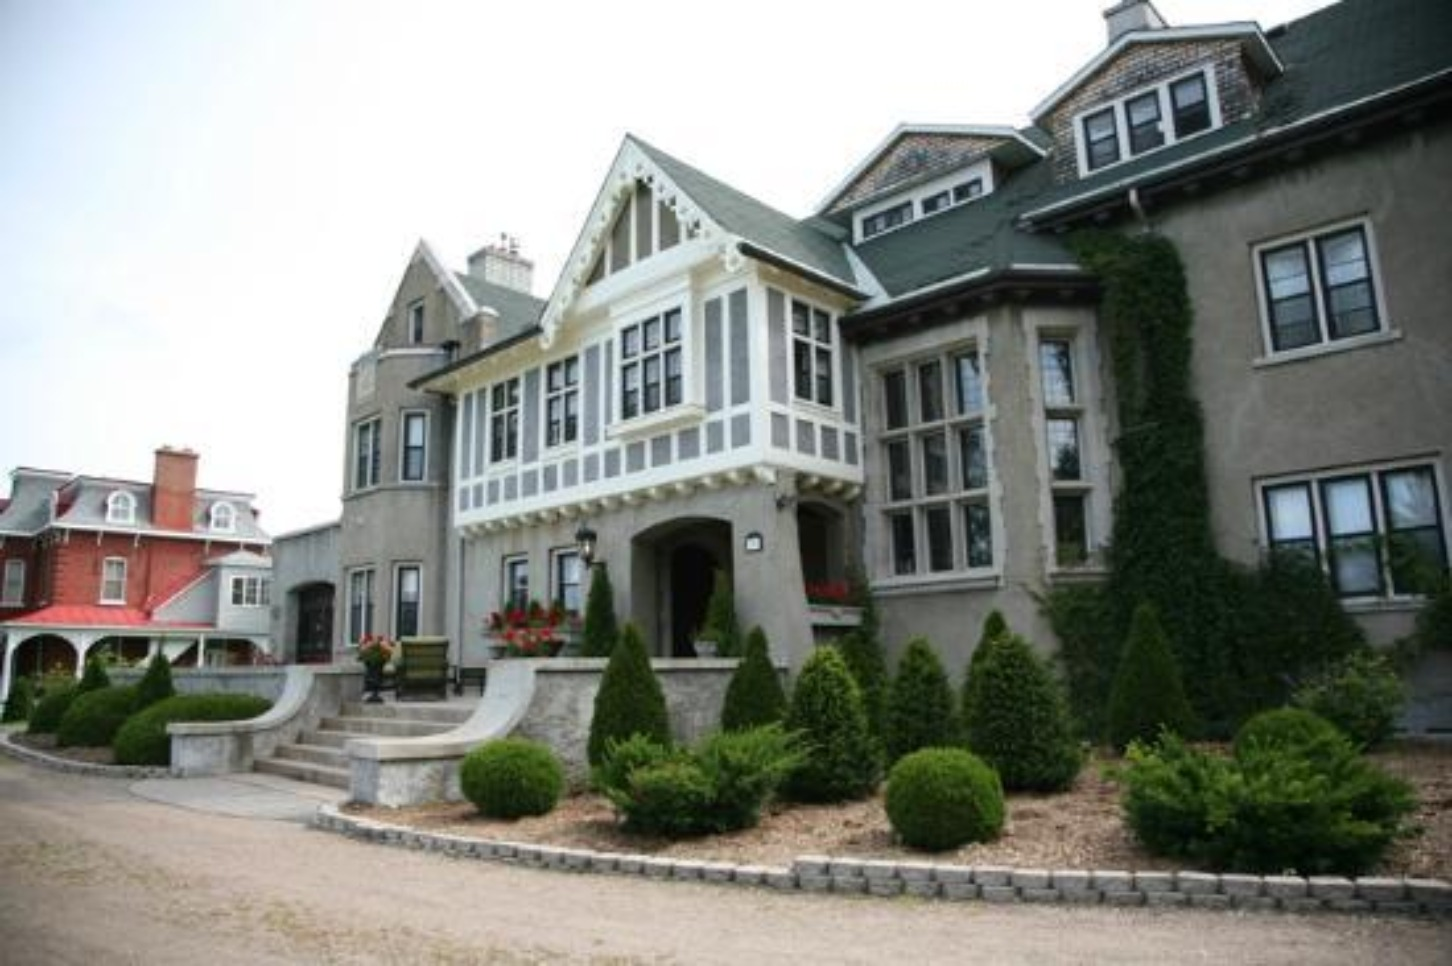 A large building at Gray Gables Bed and Breakfast.